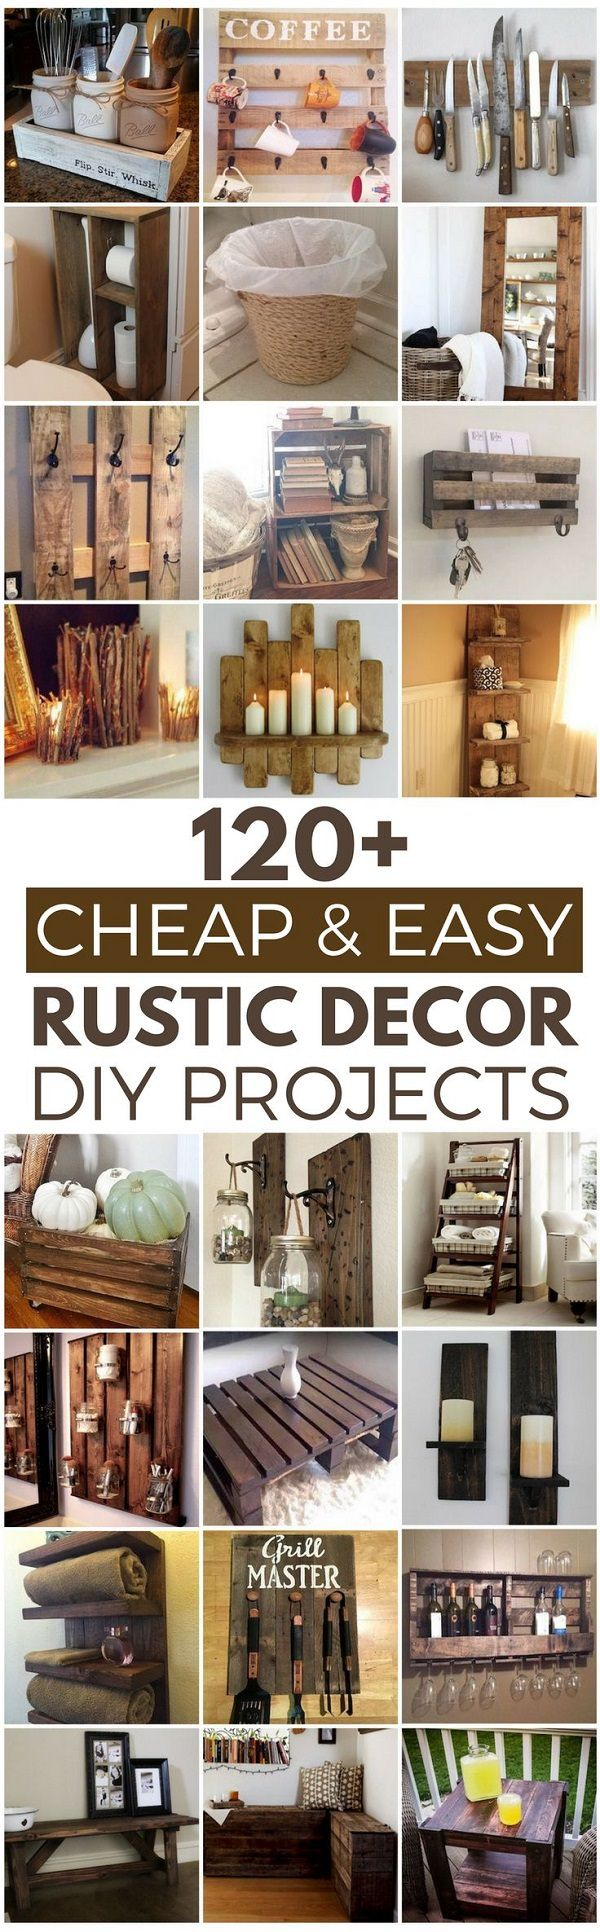 Best 20 Rustic Home Decorating Ideas On Pinterest Diy Home Decorators Catalog Best Ideas of Home Decor and Design [homedecoratorscatalog.us]